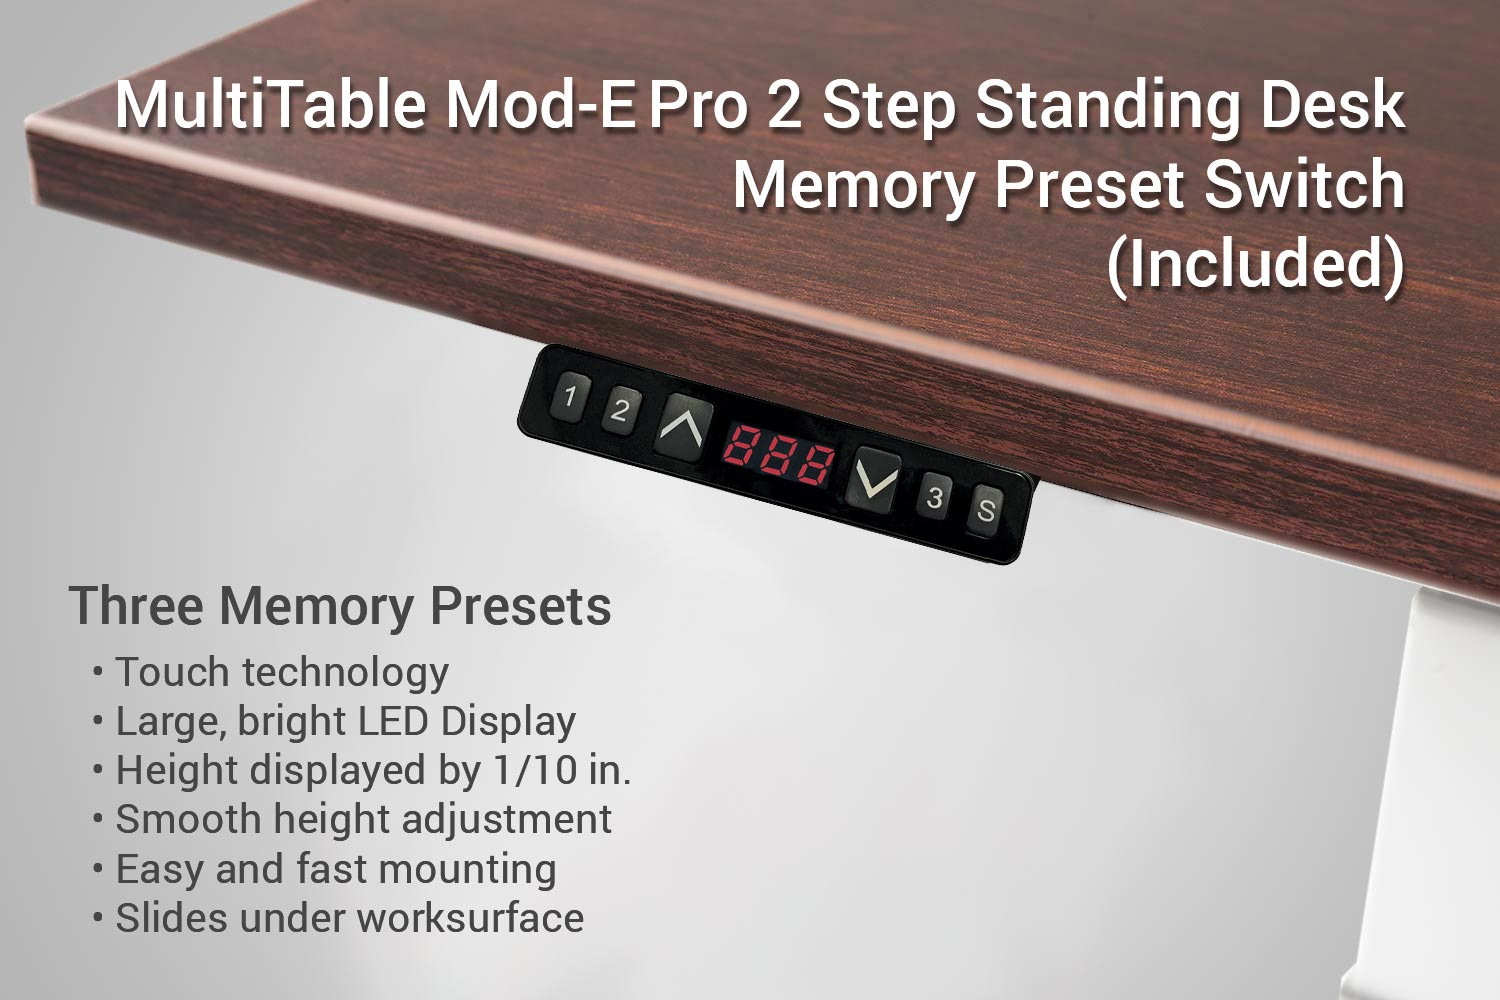 MultiTable Mod E Pro 2 Step Electric Standing Desk Memory Preset Up Down Switch